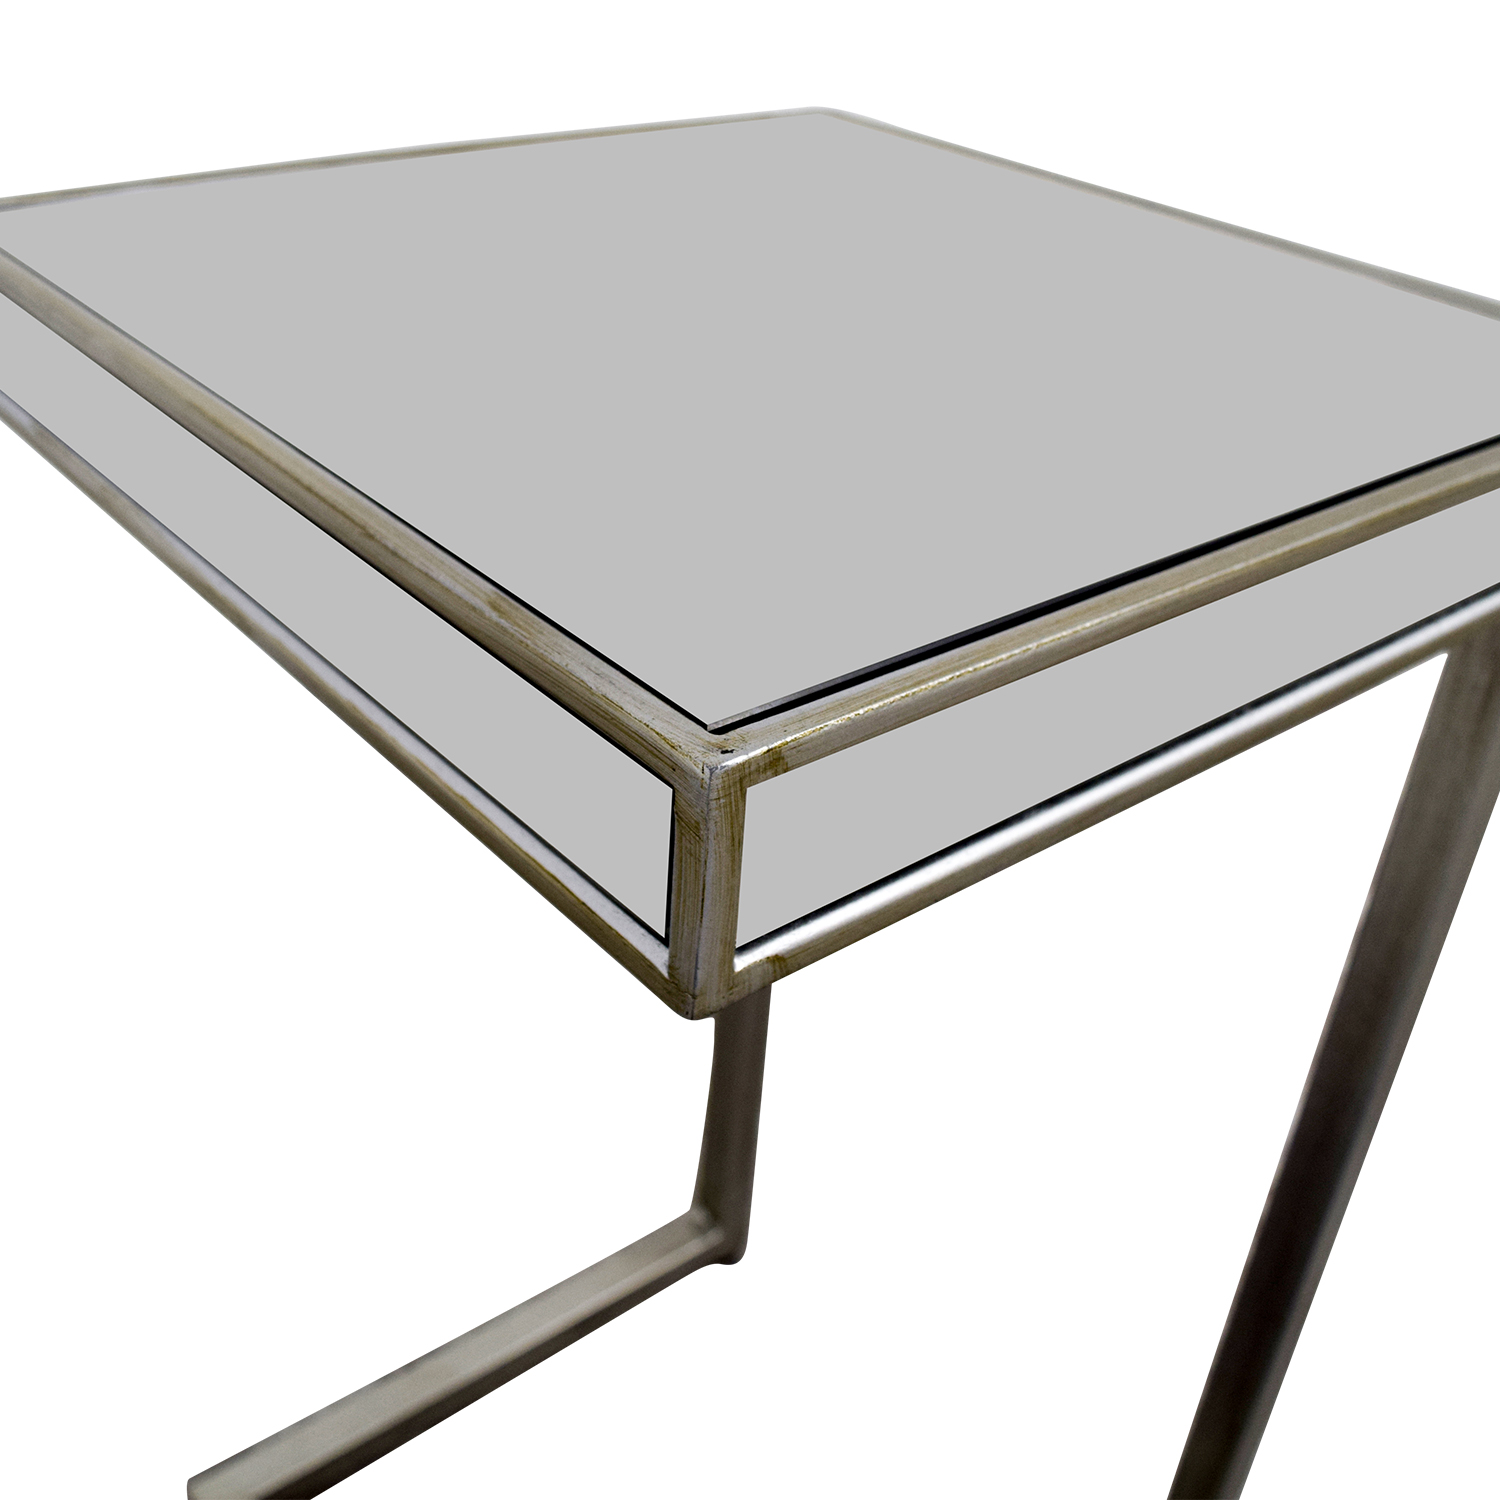 shop Pier 1 Imports Hayworth Silver C-Table in Mirror Pier 1 Imports Utility Tables